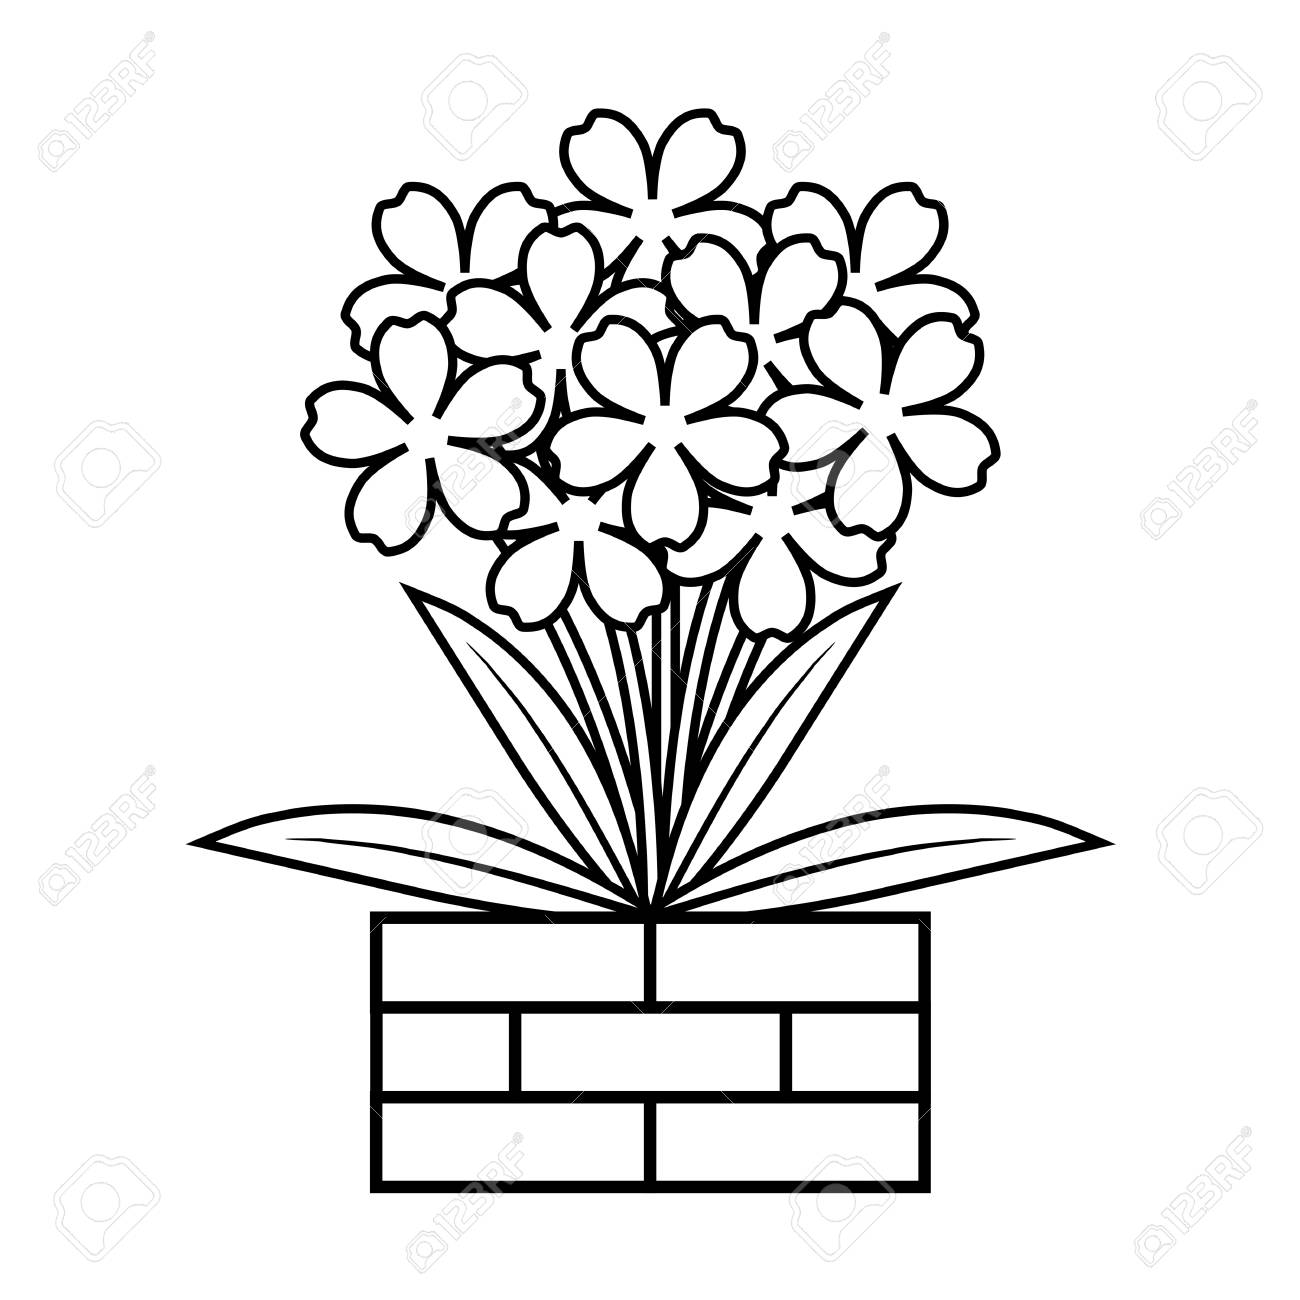 Coloring Book Flower In Flowerpot Cute Floral Outline Vector Illustration Stock